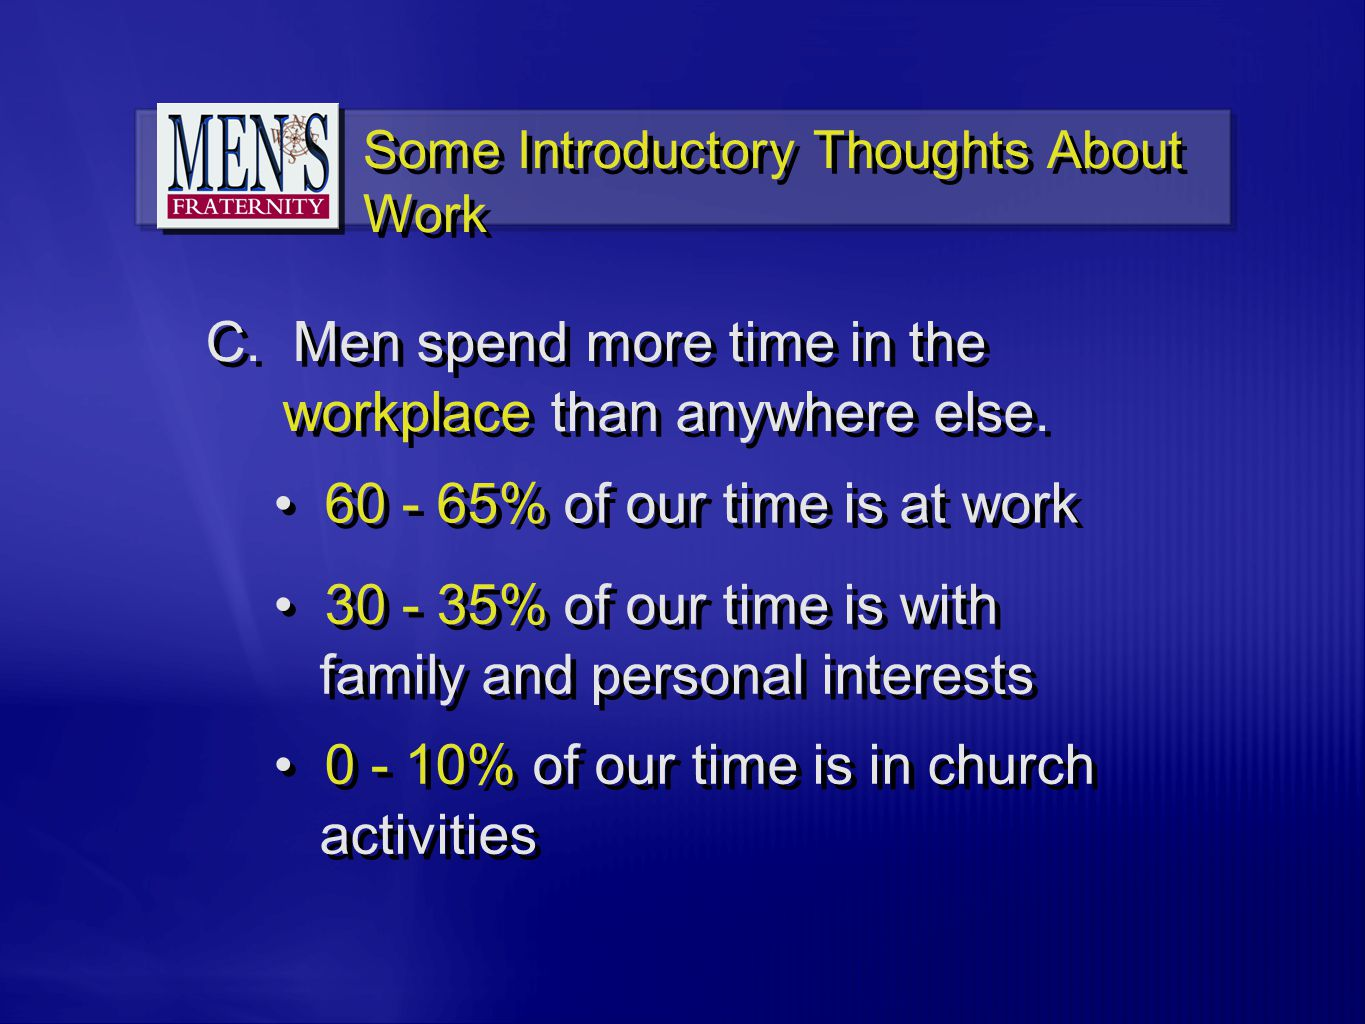 C. Men spend more time in the workplace than anywhere else.